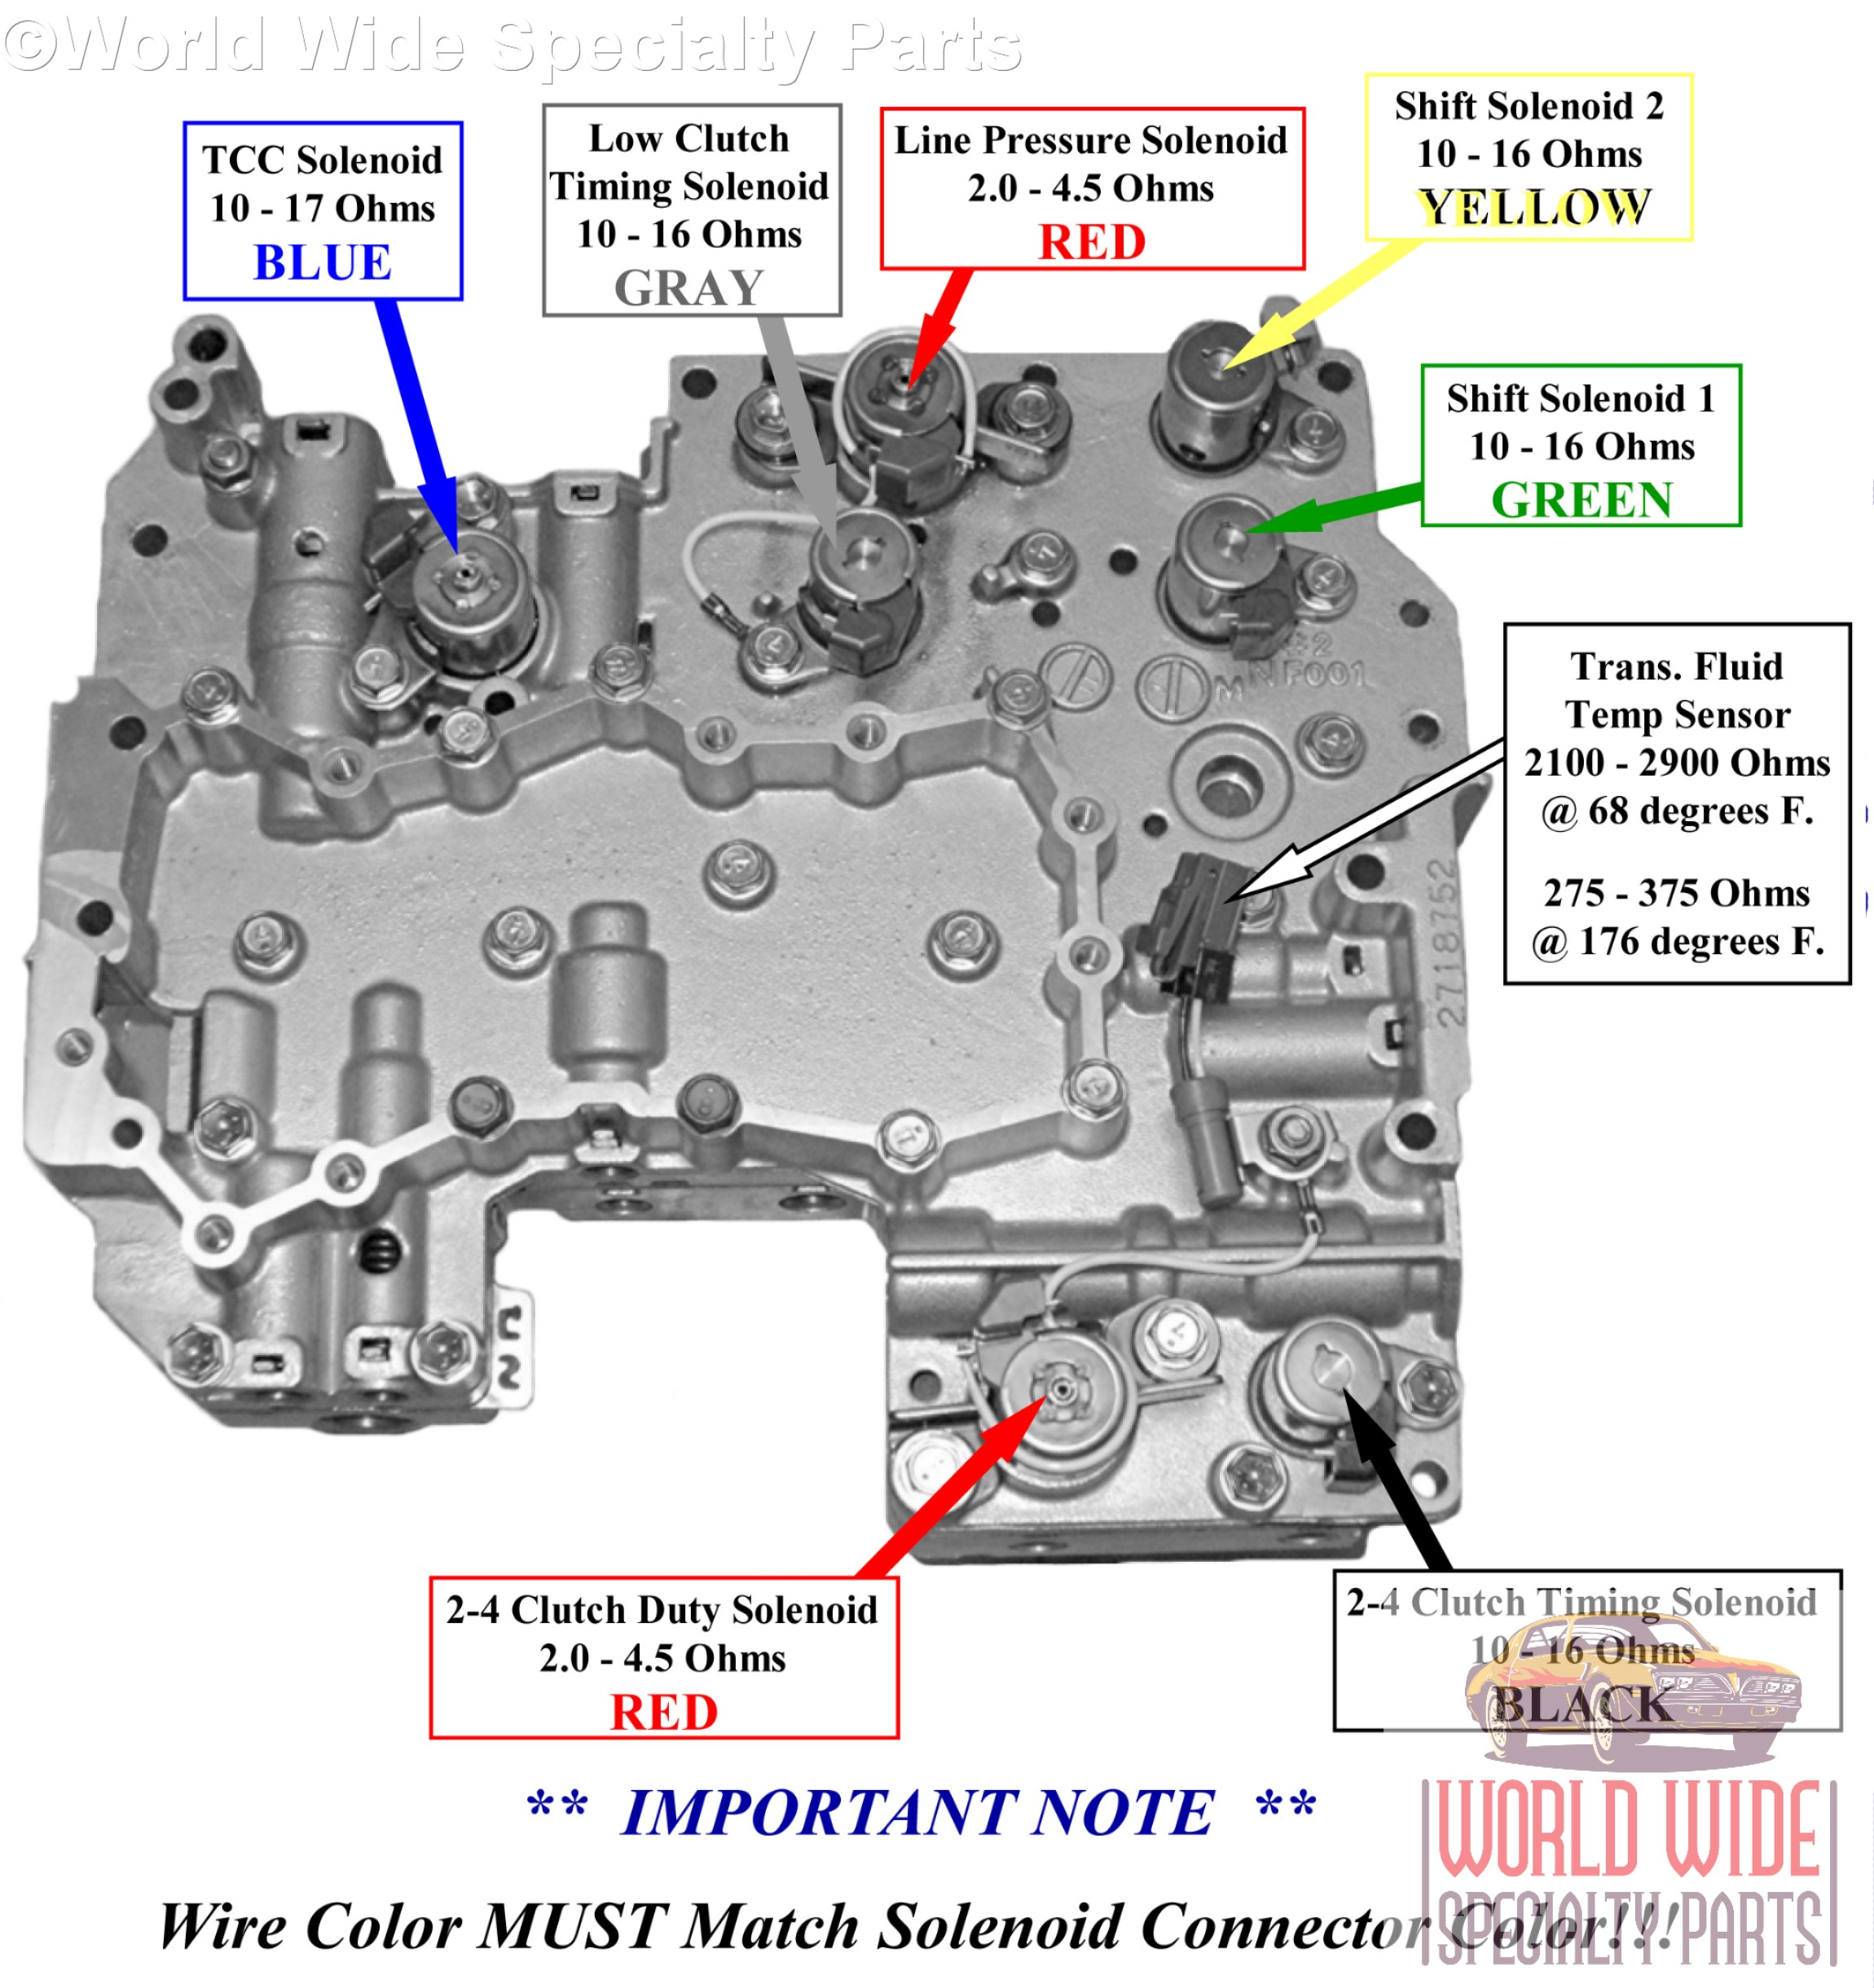 aod transmission wiring diagram with 291282465983 on 2006 Ford F150 Automatic Transmission Engine Code also Wiring Harness To Convert From A 4l70e Transmission To A 4l80e Transmission Some 2006 On 4l70e Type With Input Speed Sensor Only moreover Blog Entry 10 furthermore Steering Column 97387 also 760922 E40d Transmission.